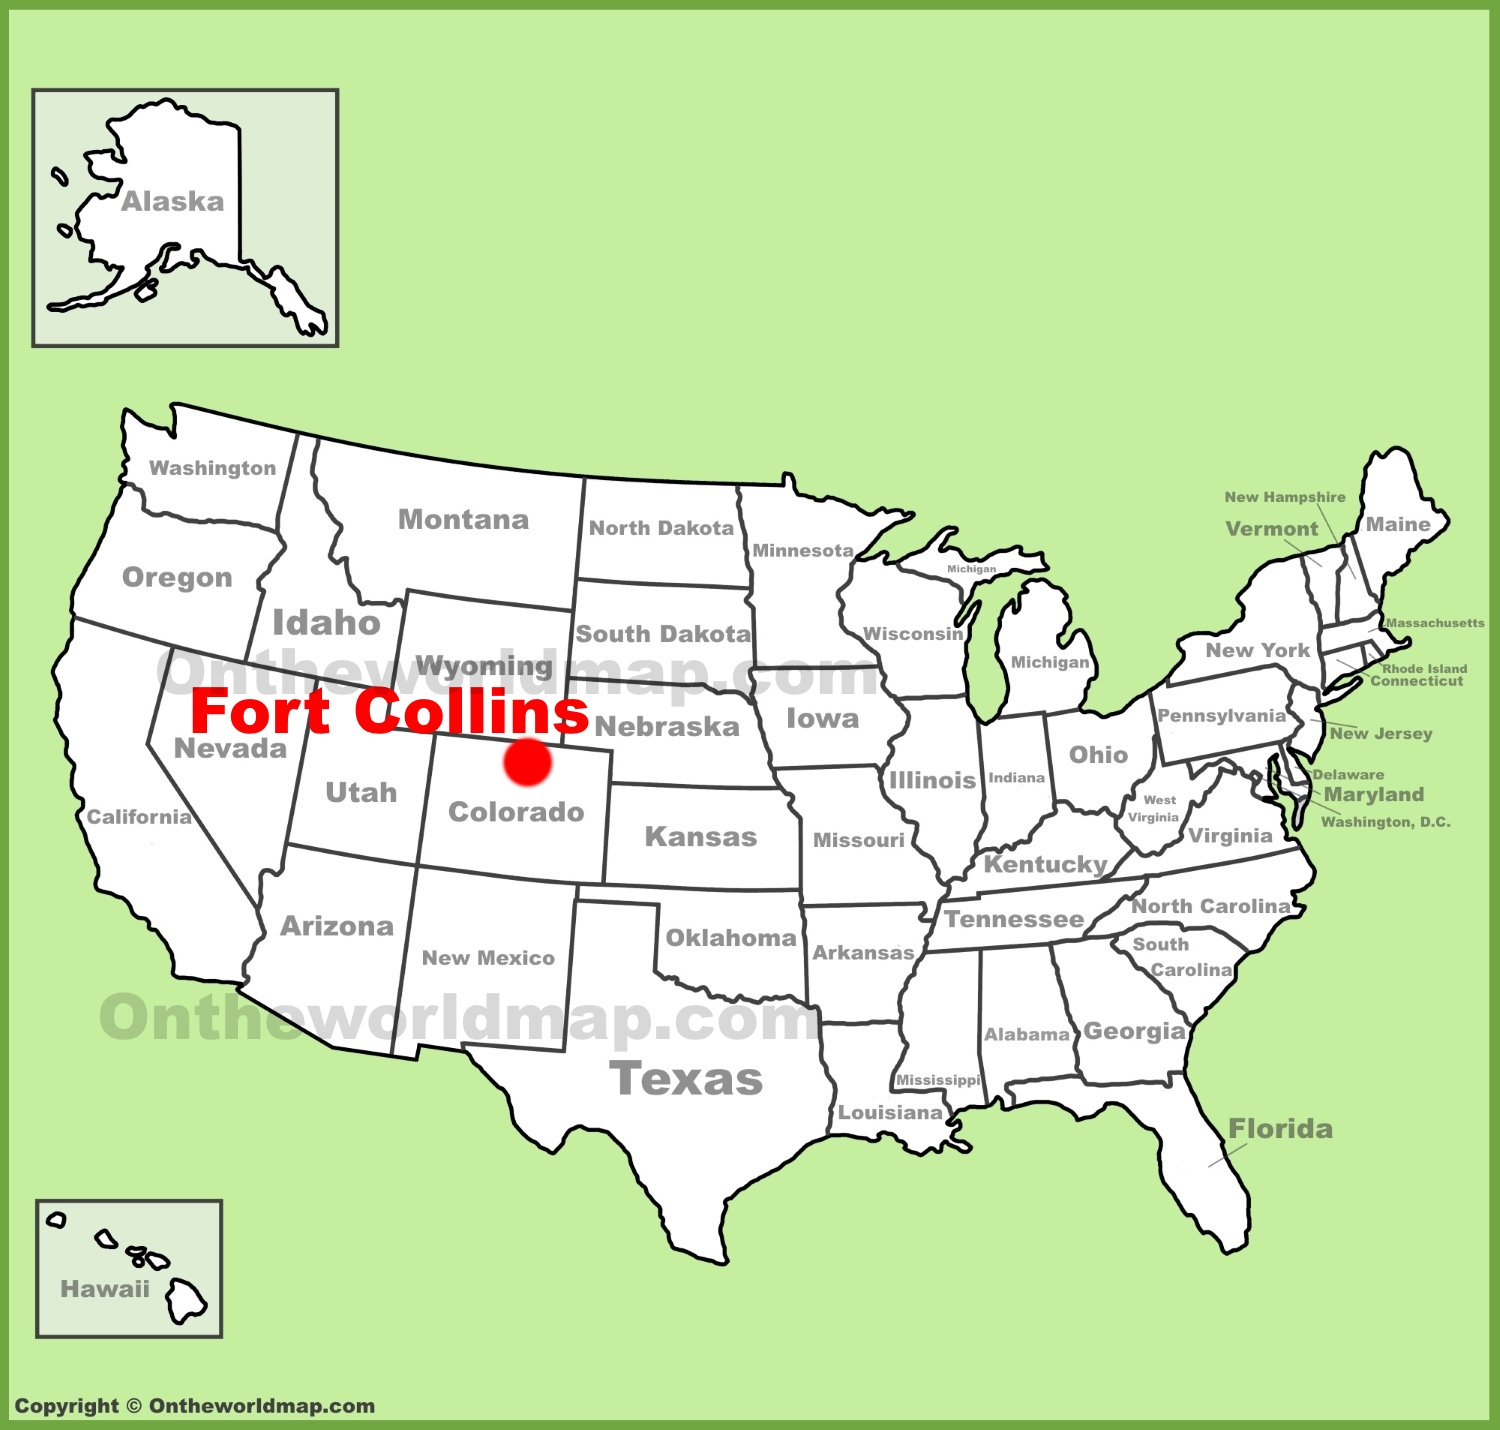 Where Is Fort Collins Colorado On The Map Fort Collins location on the U.S. Map